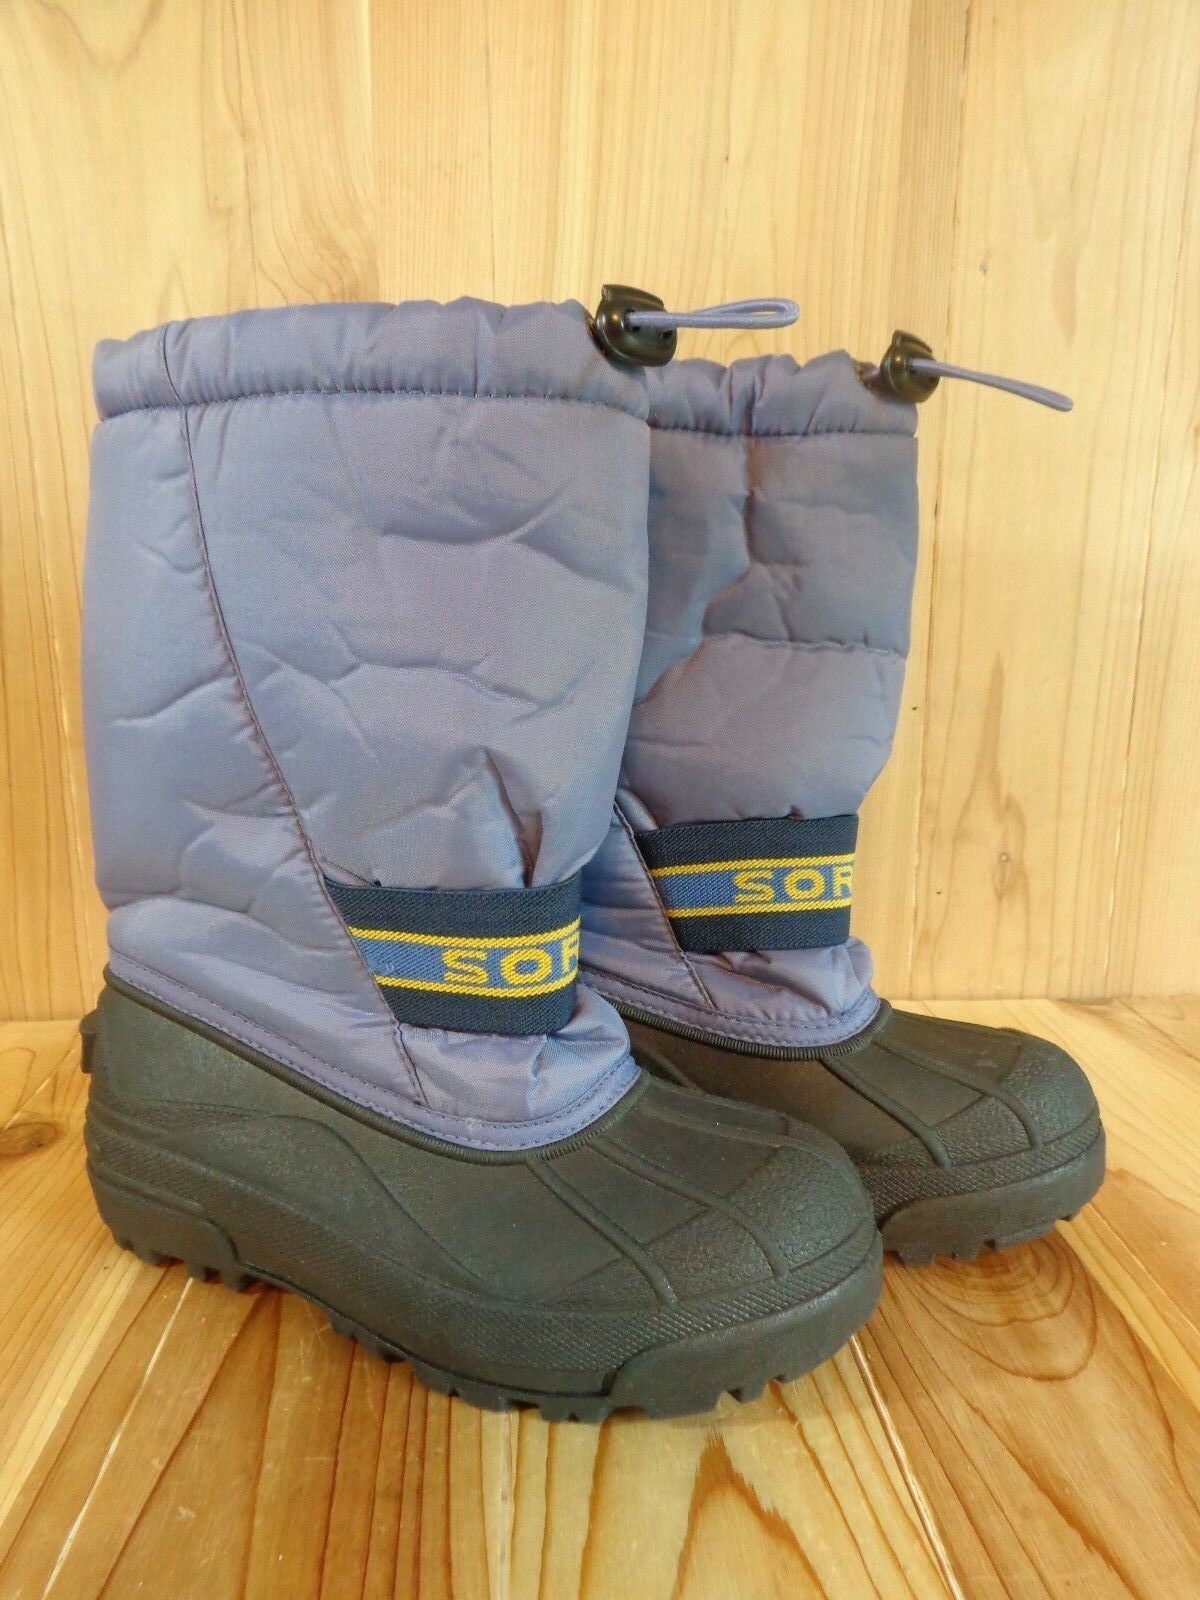 SOREL Snow Chariot Winter Boots Womens Size 5 Purple LY1650 Insulated Waterproof